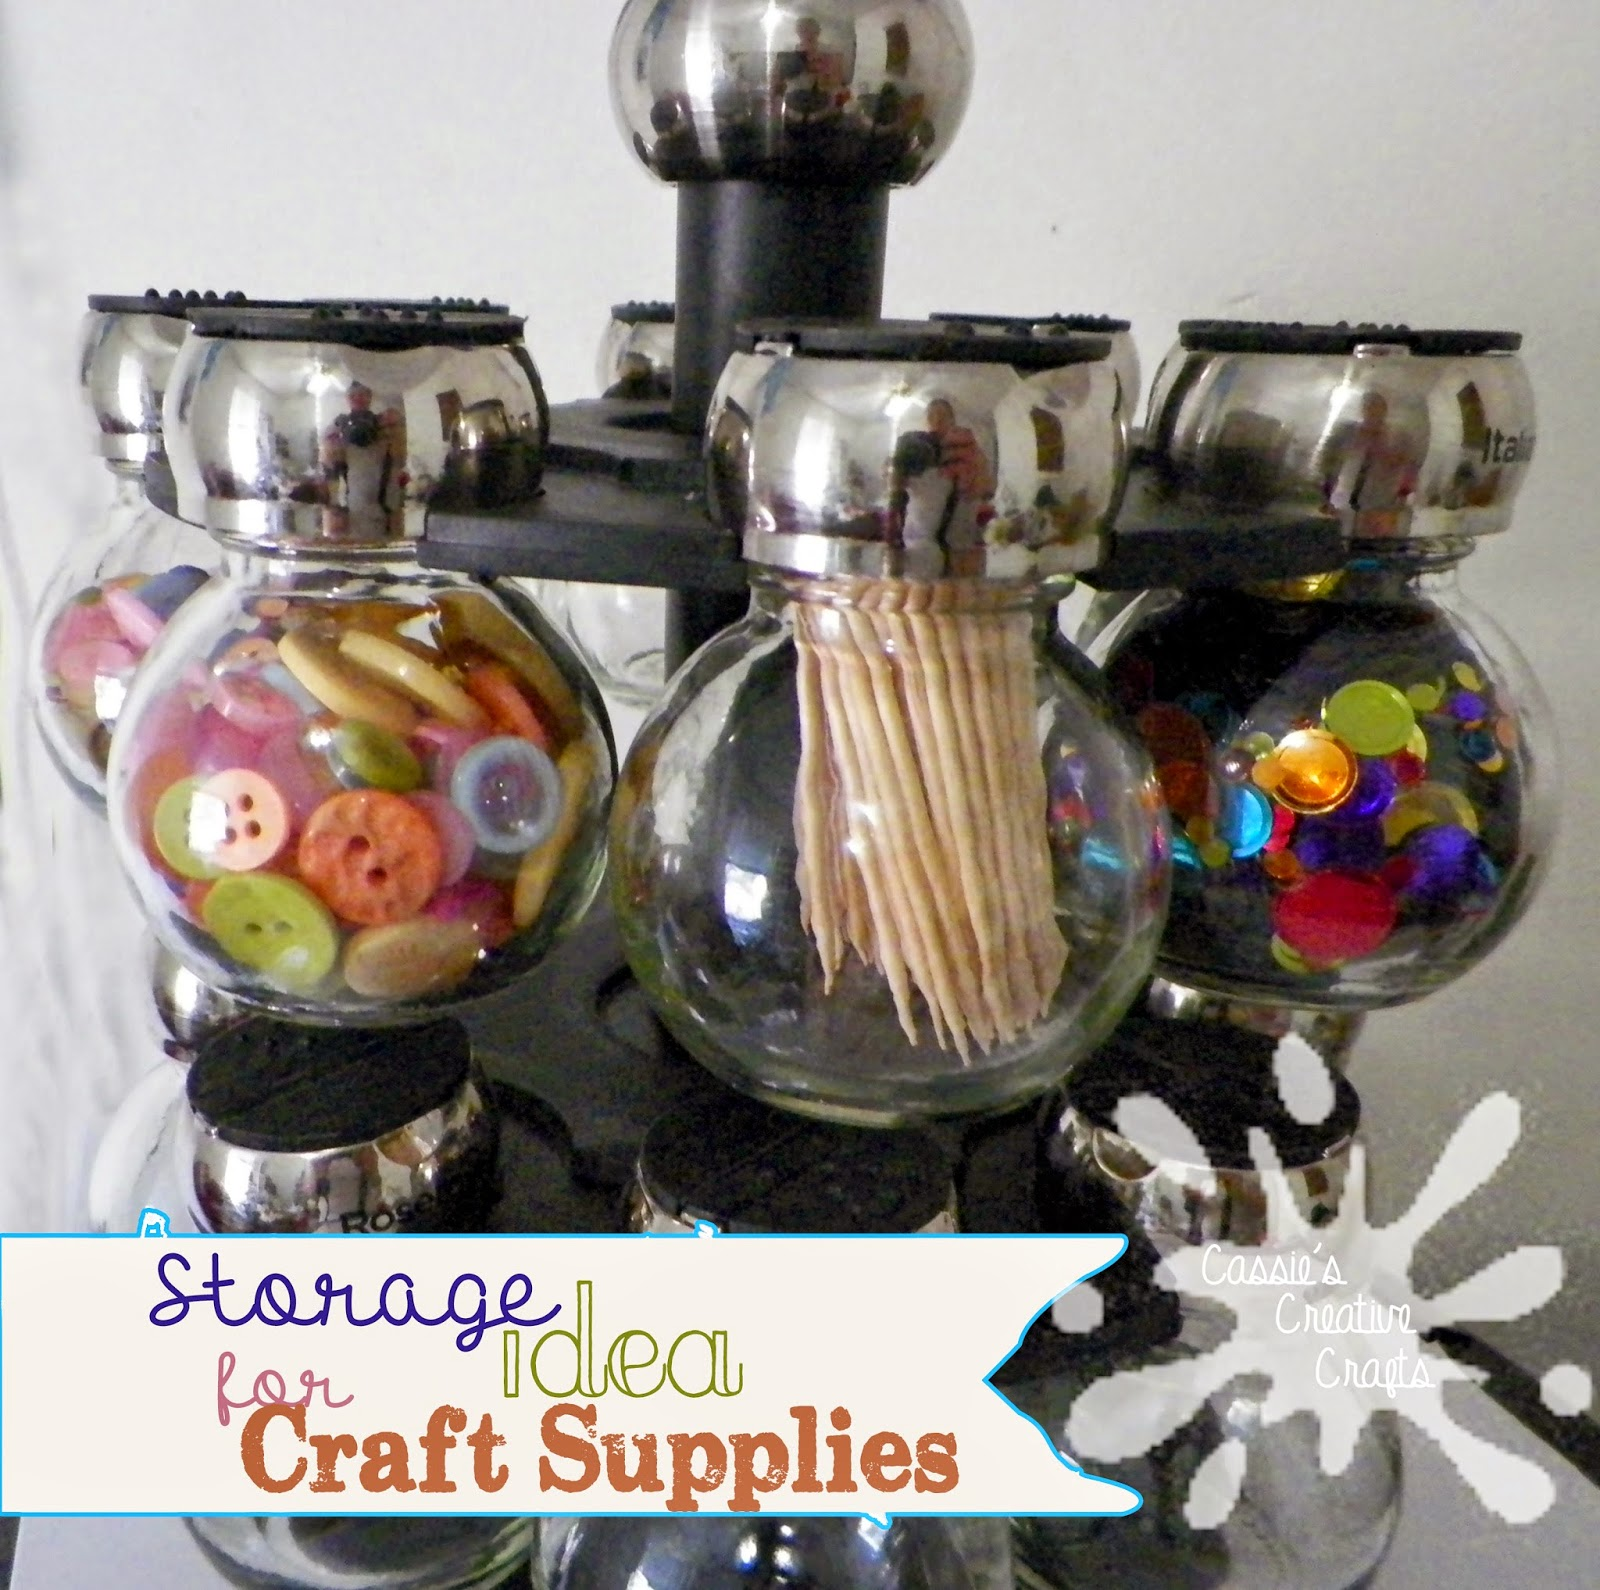 Storage ideas copyright Cassie's Creative Crafts